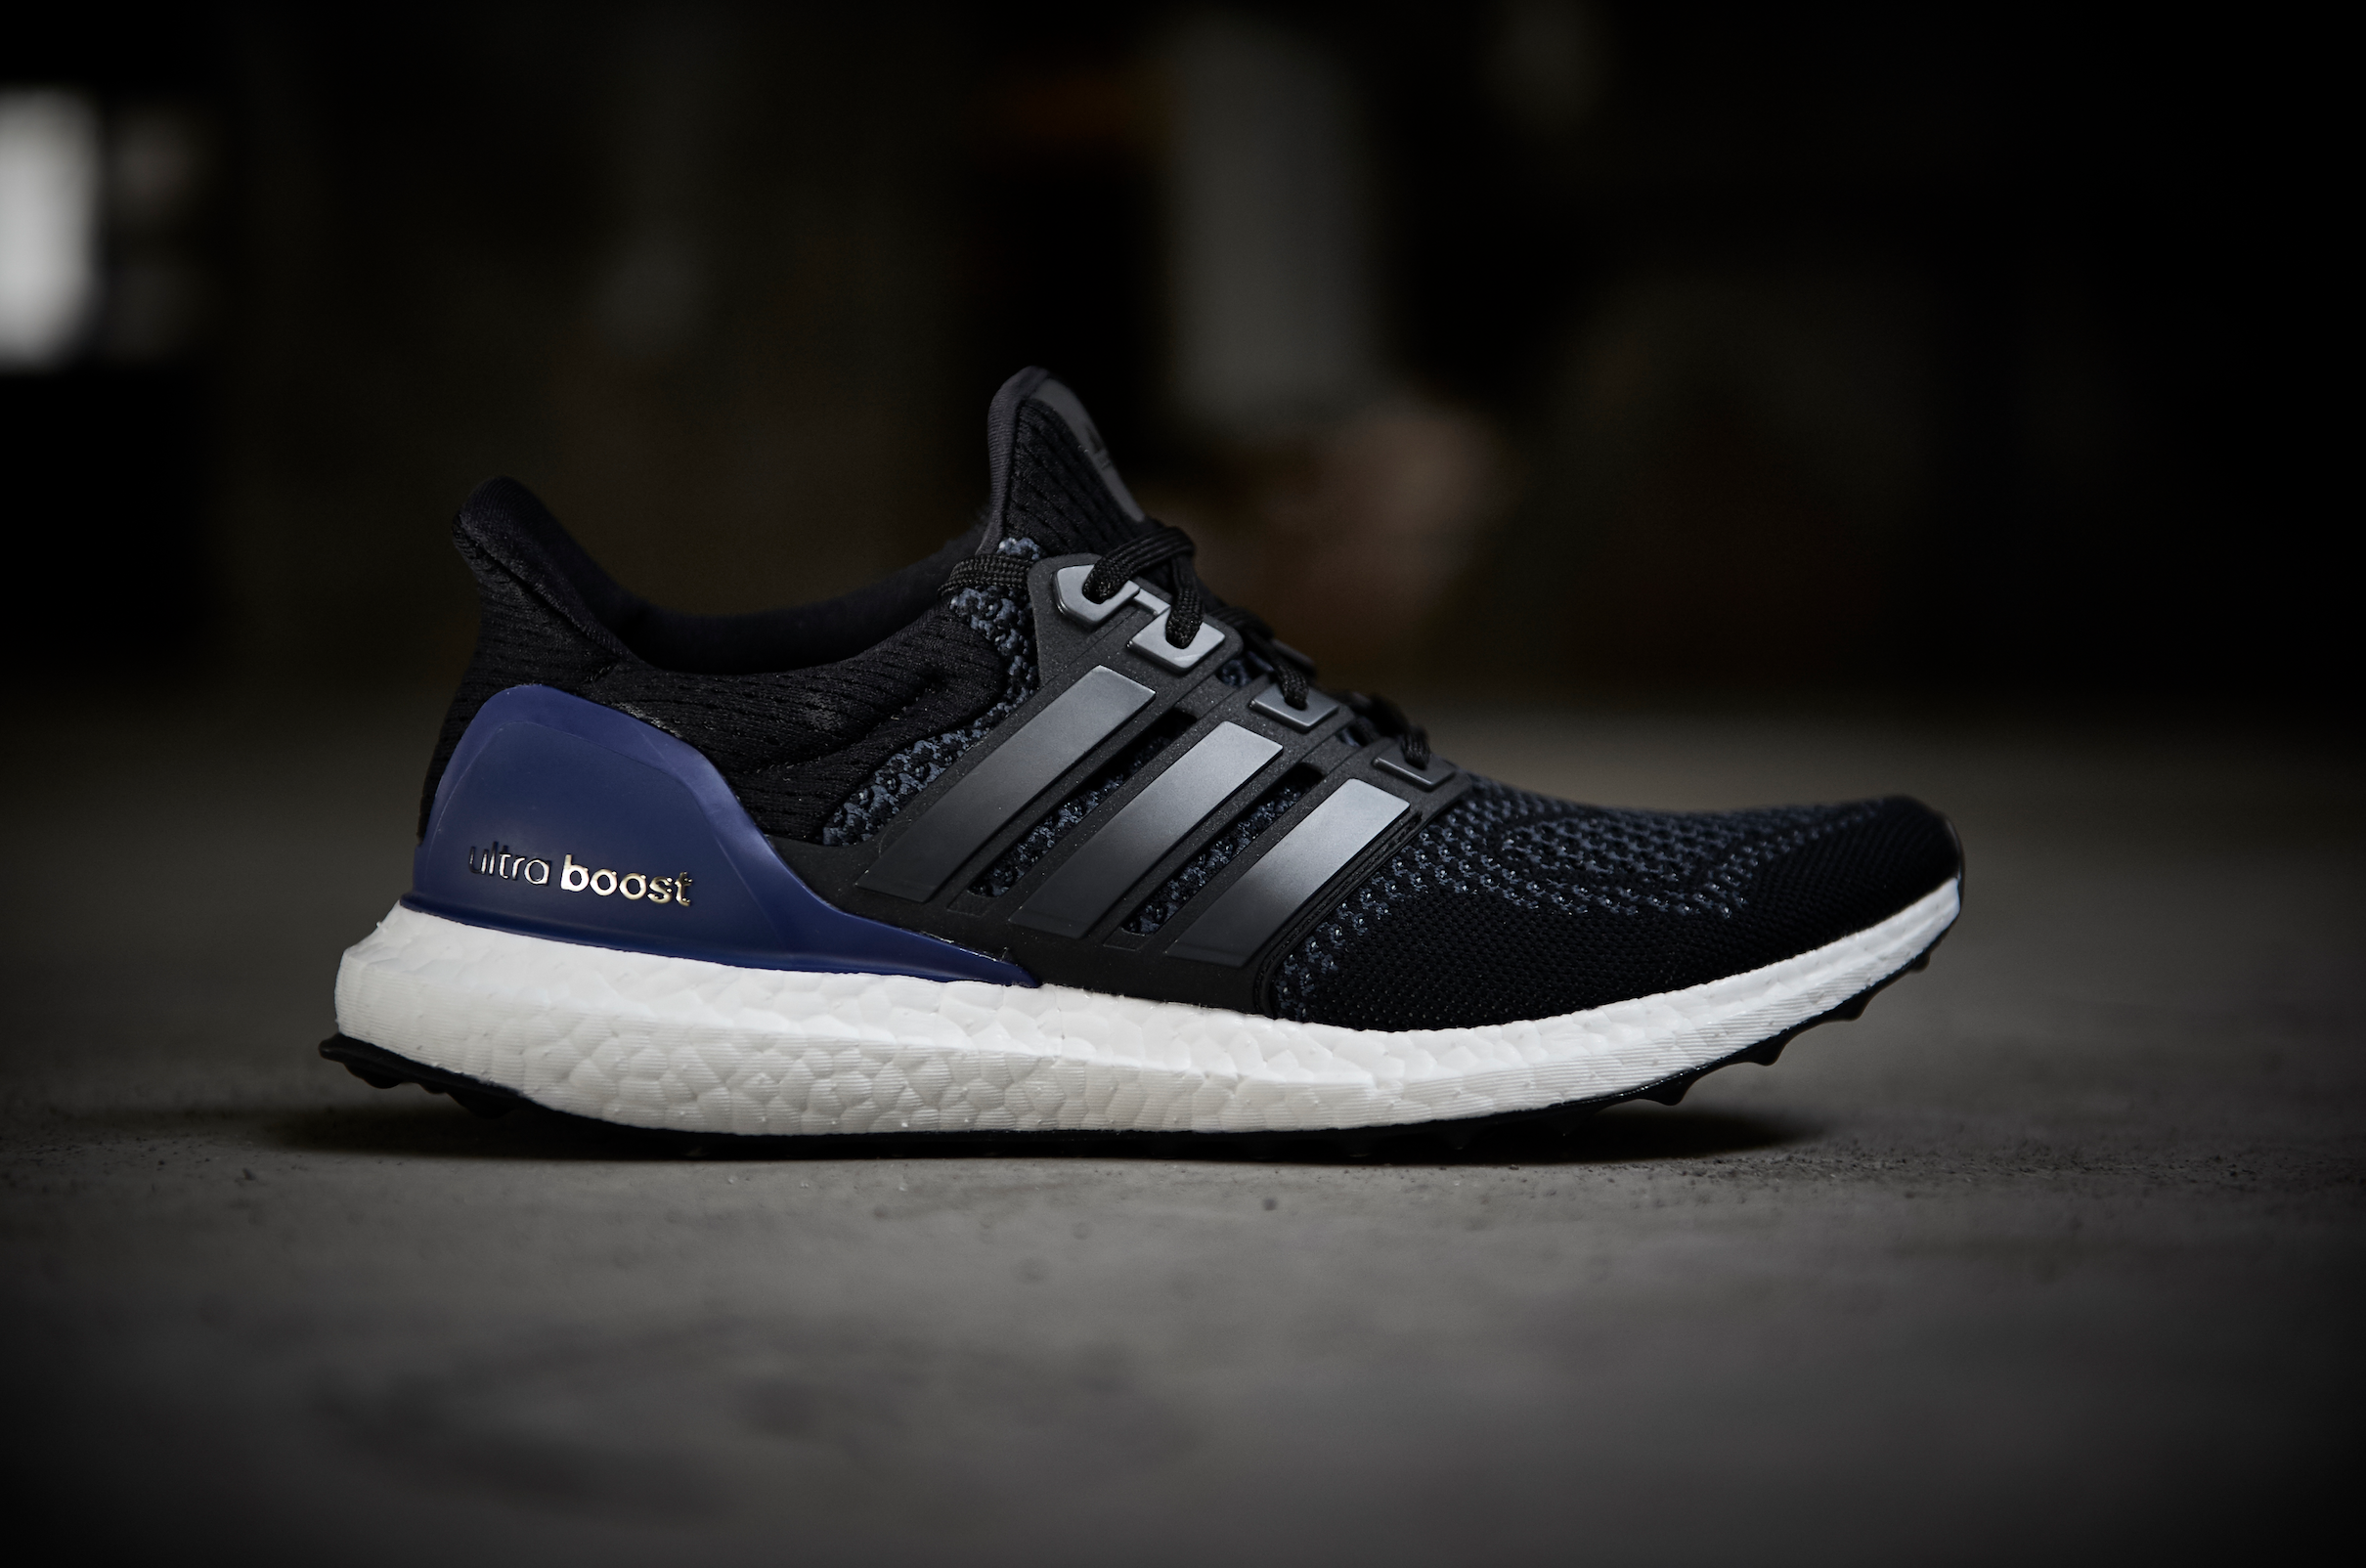 adidas unveils ultra boost david report. Black Bedroom Furniture Sets. Home Design Ideas